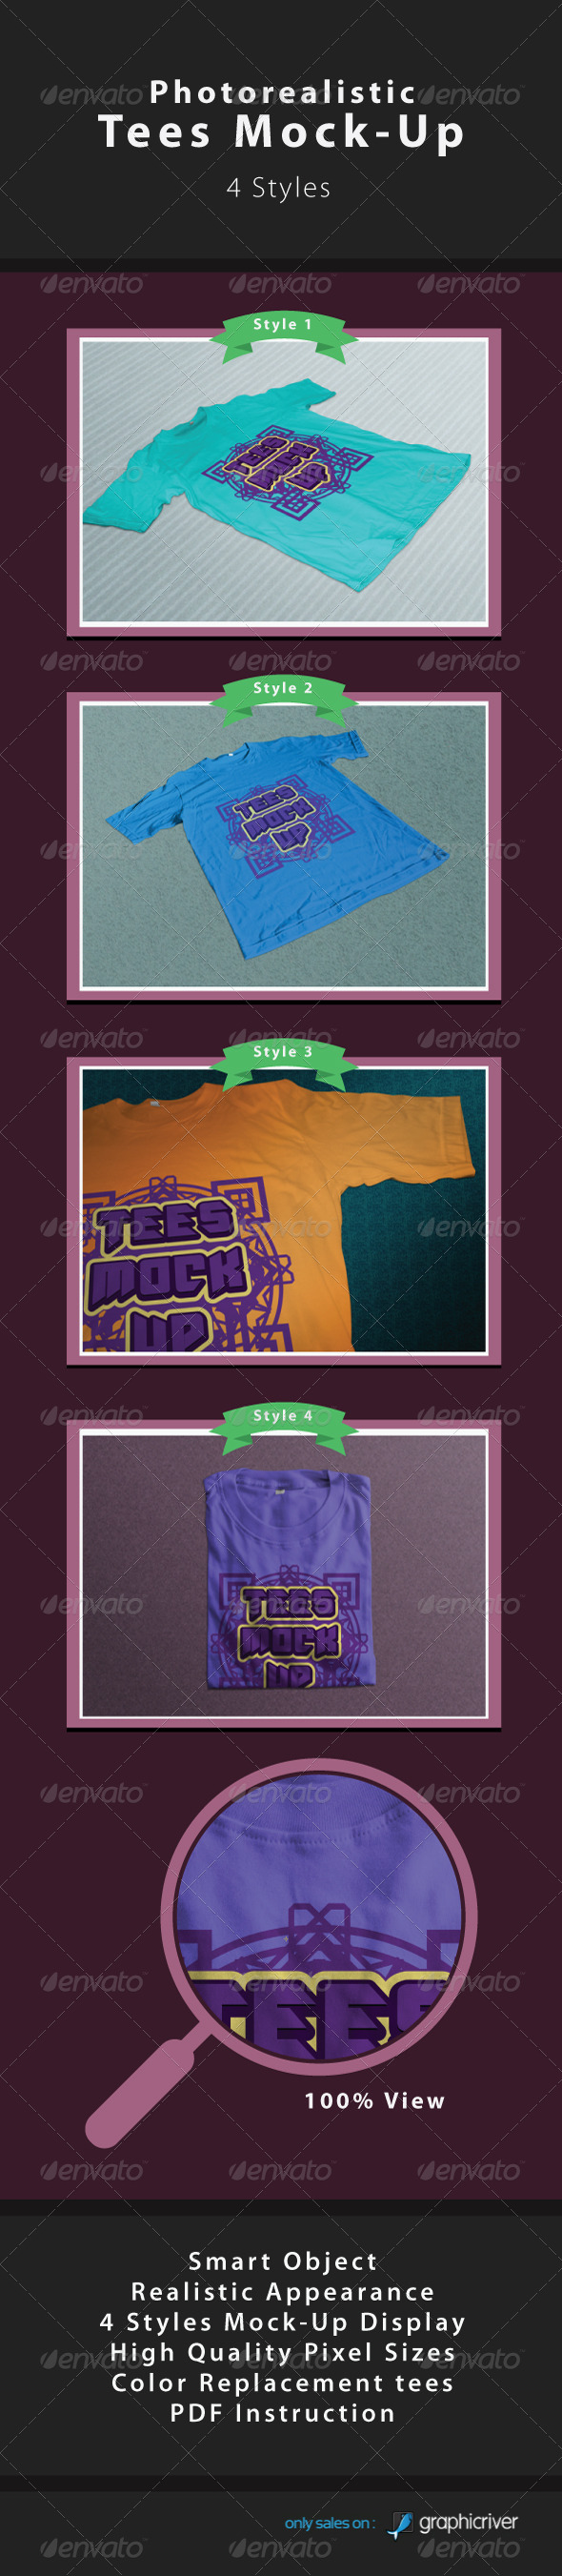 GraphicRiver Photo Realistic Tees Moc 4079842